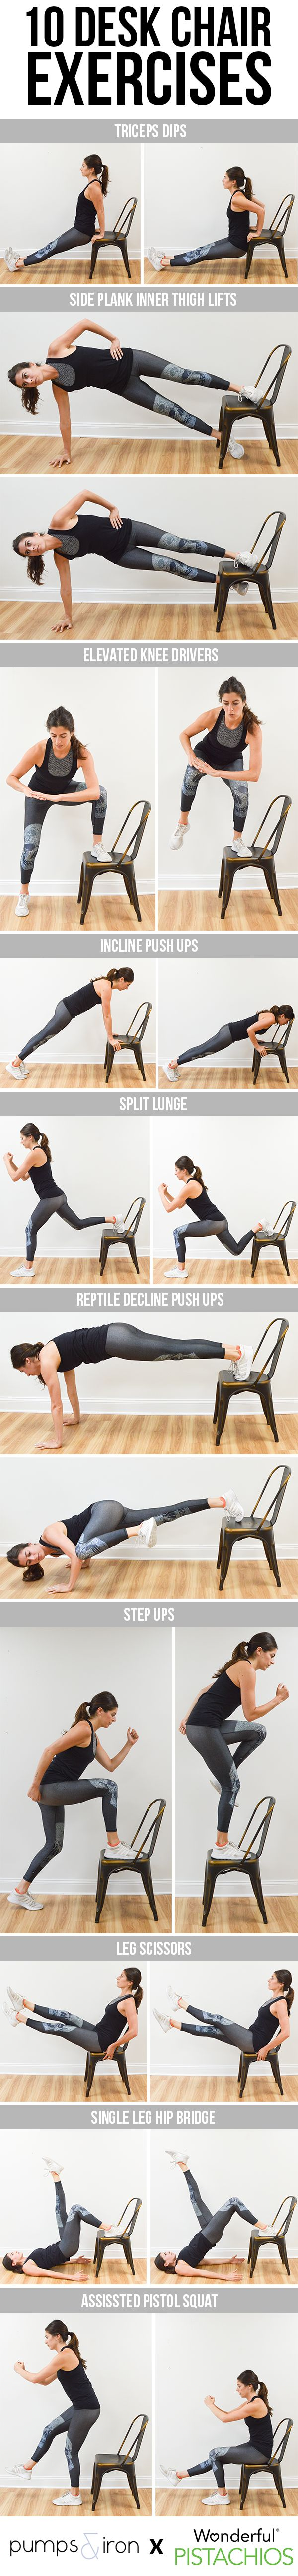 Best 25 fice workouts ideas on Pinterest